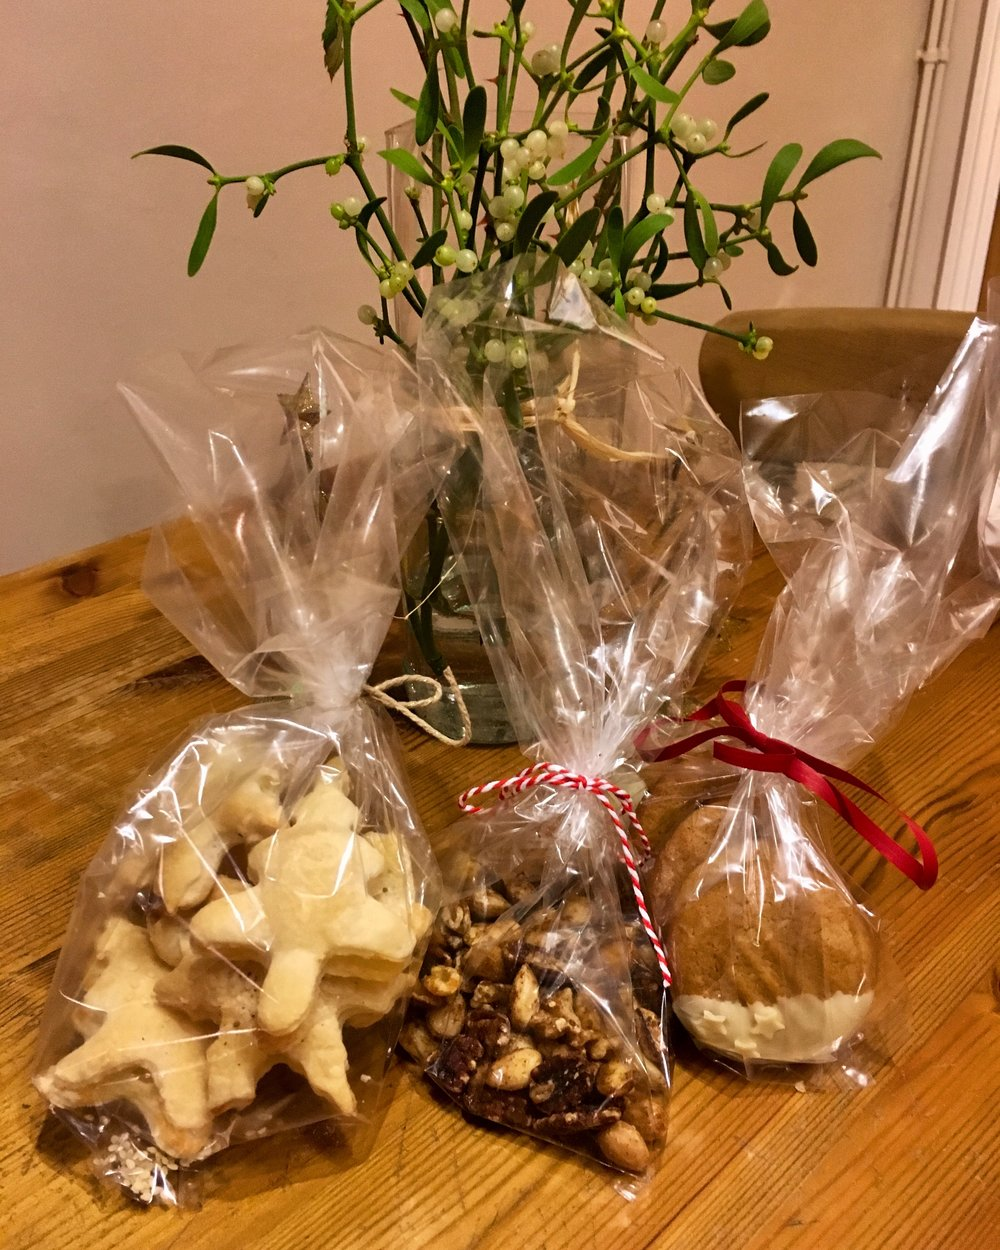 Our home baked Christmas gifts